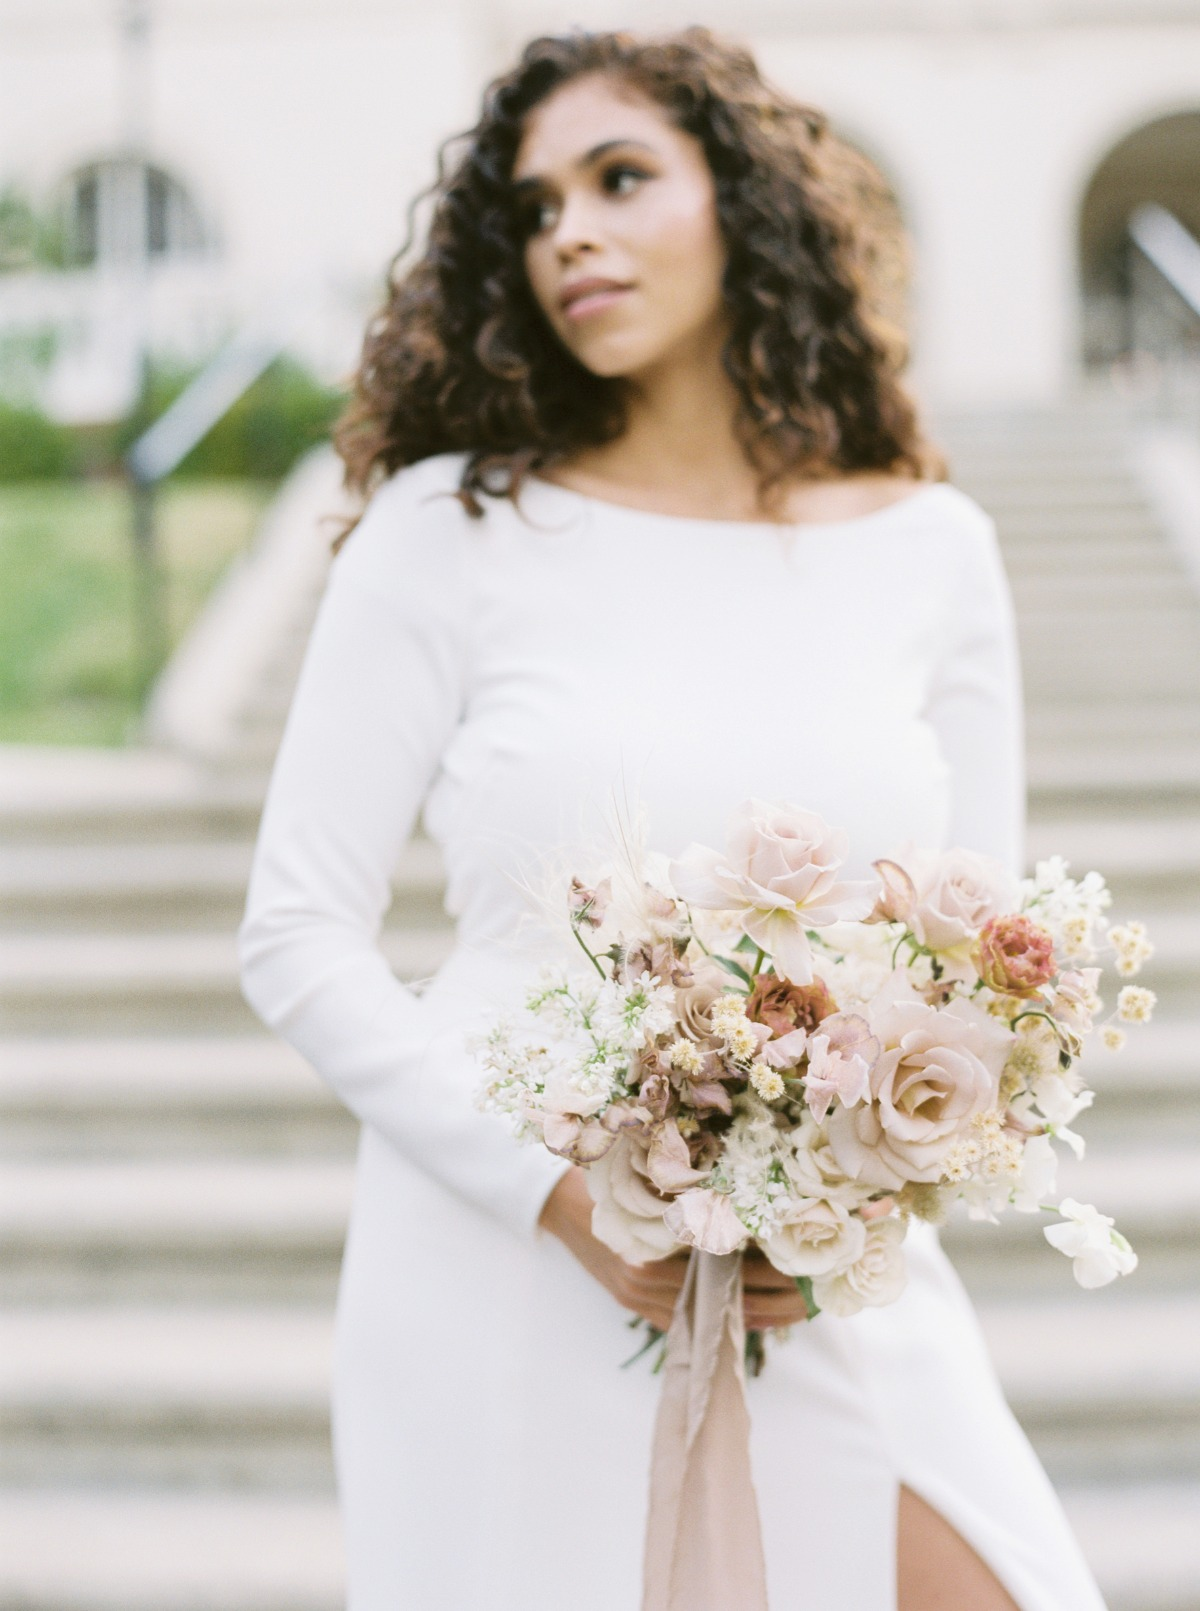 How To Have A Modern Romance Wedding in Black + Blush